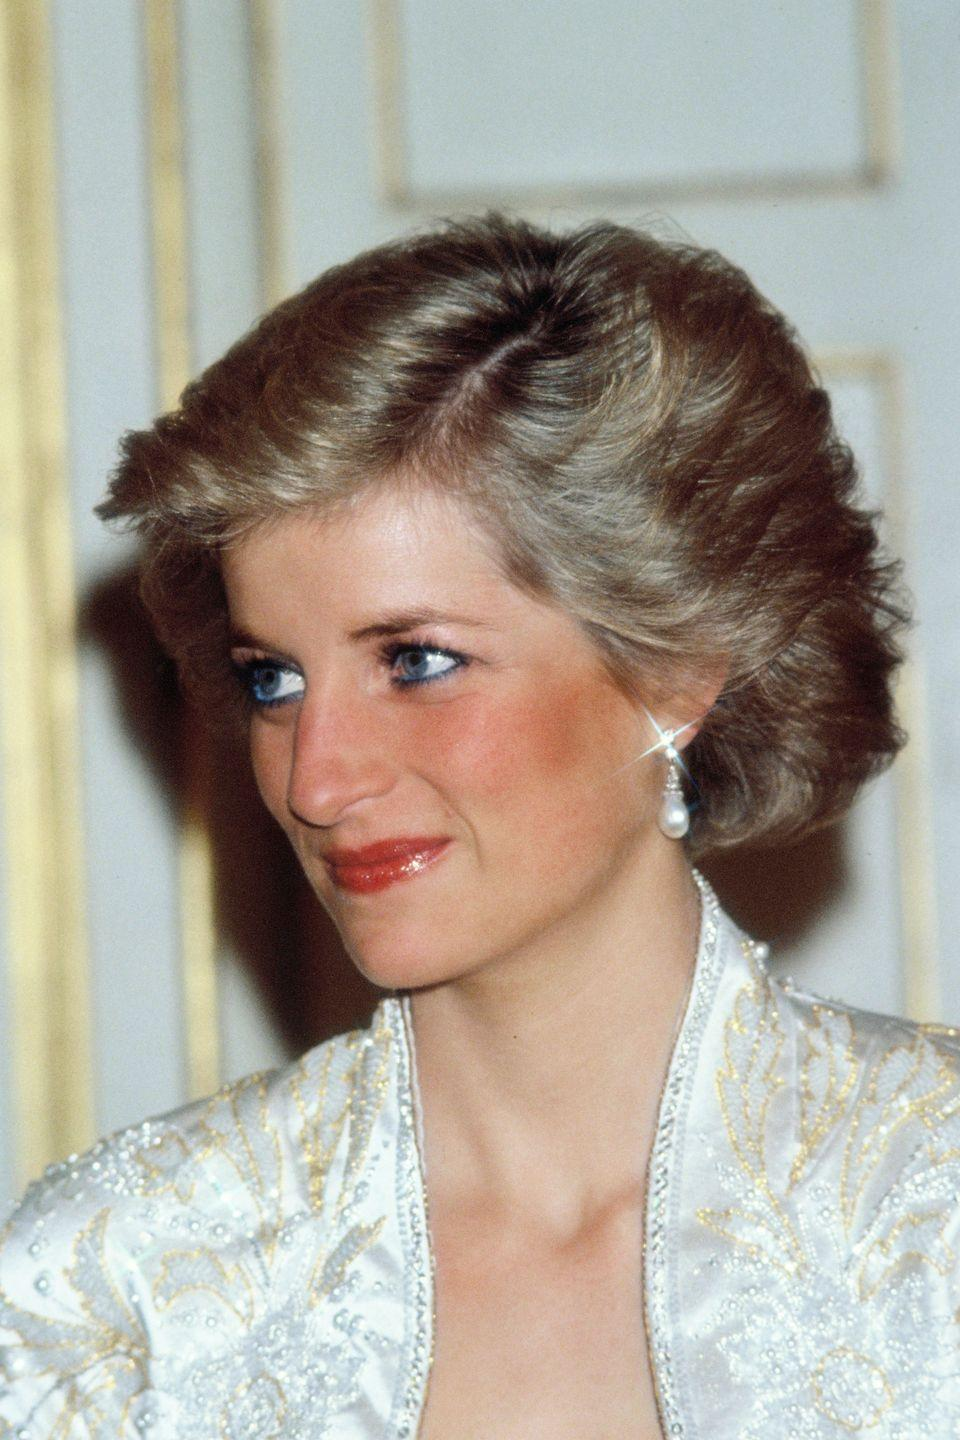 """<p>Princess Diana didn't just swipe the brush and go. """"I always taught her to make sure — when applying <a href=""""https://www.goodhousekeeping.com/beauty-products/mascara-reviews/g4852/best-drugstore-mascara/"""" rel=""""nofollow noopener"""" target=""""_blank"""" data-ylk=""""slk:mascara"""" class=""""link rapid-noclick-resp"""">mascara</a> by herself — that she covered the roots of the lashes too,"""" Greenwell told <em><a href=""""http://www.stylist.co.uk/beauty/dianas-beauty-secrets"""" rel=""""nofollow noopener"""" target=""""_blank"""" data-ylk=""""slk:Stylist"""" class=""""link rapid-noclick-resp"""">Stylist</a>.</em> Start in the corner of the eye and then work across before brushing it through, she <a href=""""http://www.dailymail.co.uk/femail/article-4243454/Diana-s-make-artist-Mary-Greenwell-recreates-look.html"""" rel=""""nofollow noopener"""" target=""""_blank"""" data-ylk=""""slk:advises"""" class=""""link rapid-noclick-resp"""">advises</a>.</p>"""